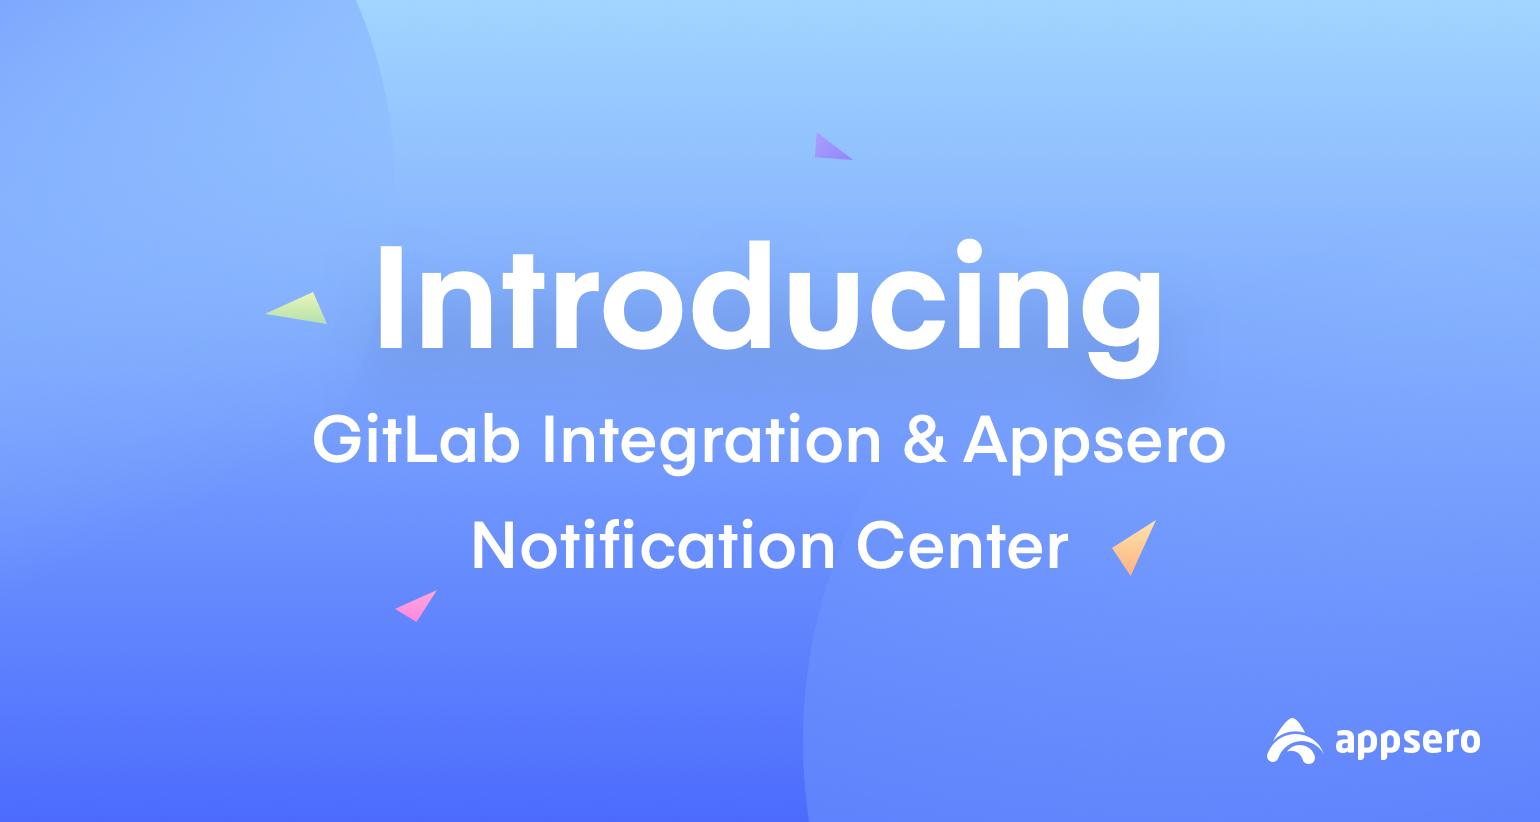 Introducing GitLab Integration & Appsero Notification Center!